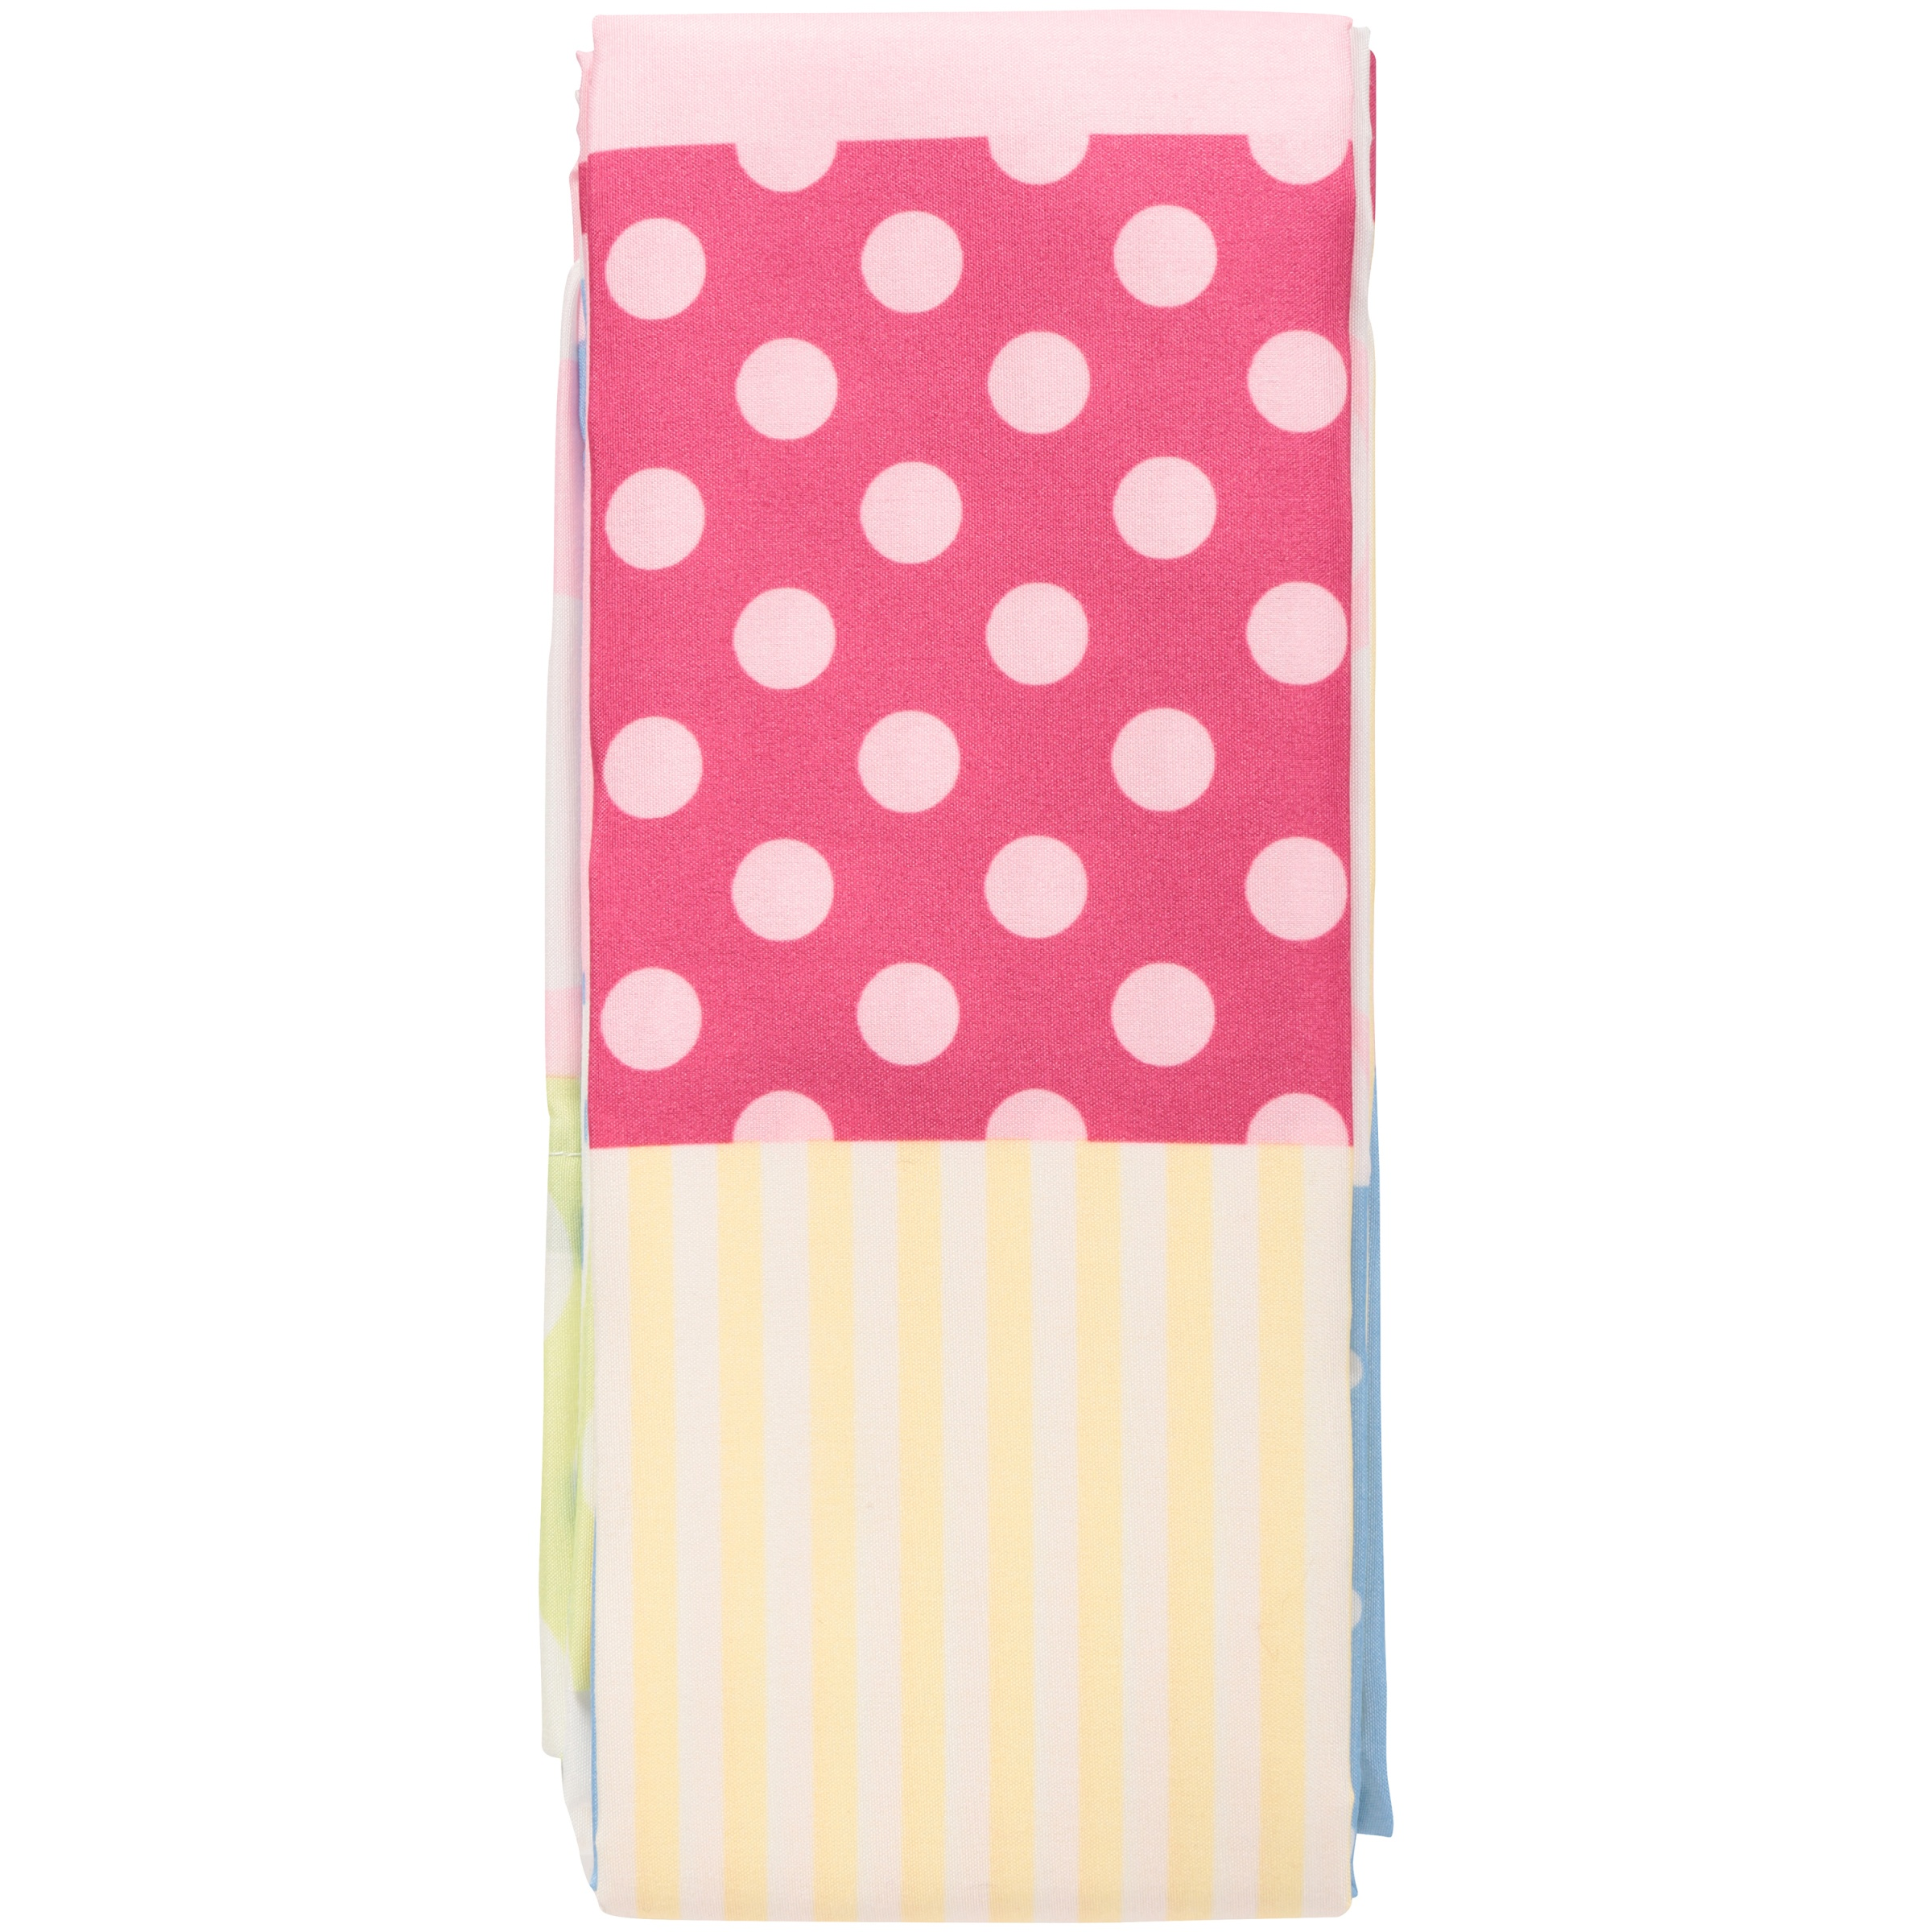 Mainstays Pink Rally Girls Bedroom Curtains, Set of two by Wal-Mart Stores, Inc.